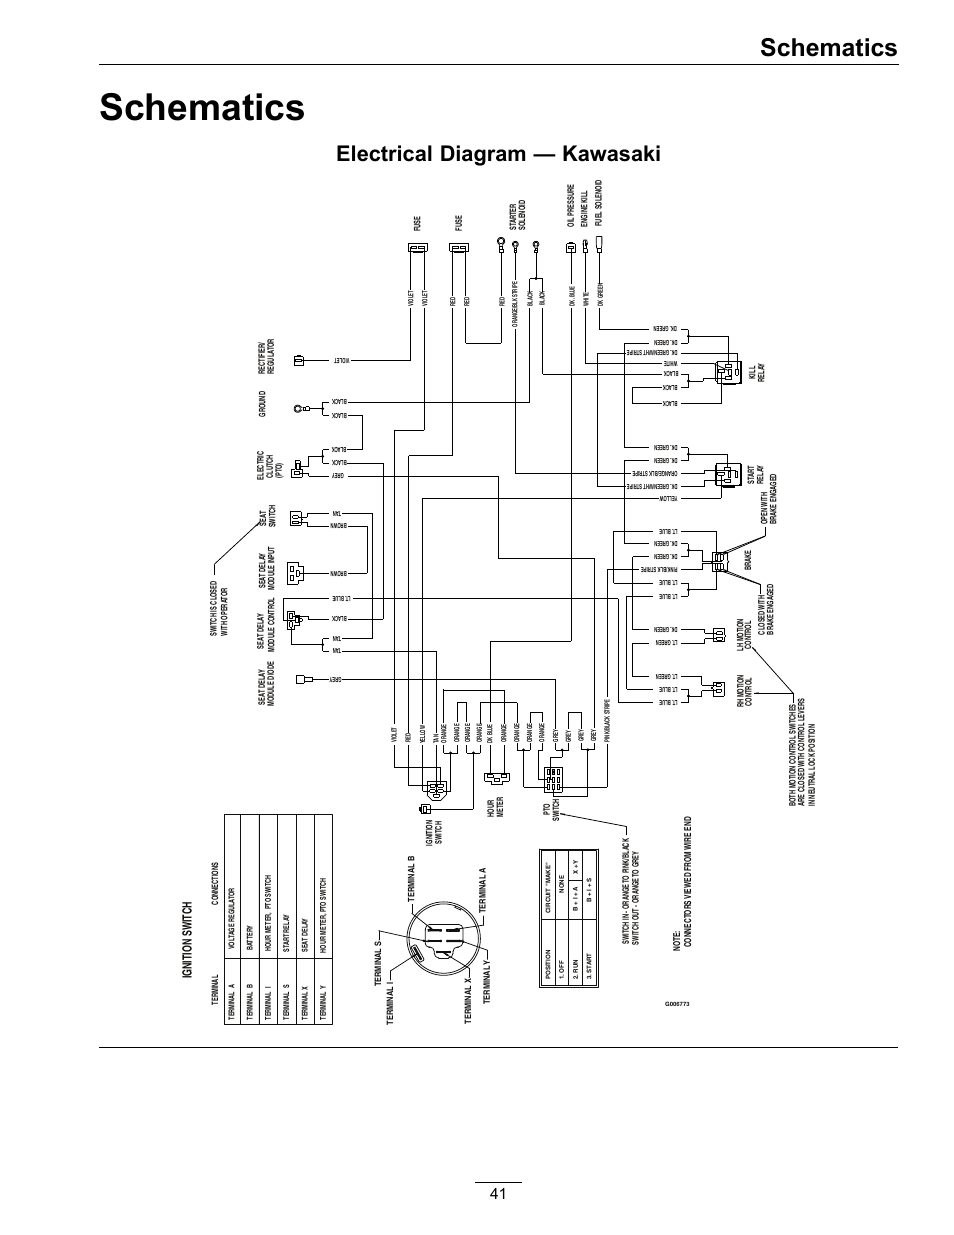 Exmark Ignition Switch Wiring Diagram List Of Schematic Circuit Kawasaki Schematics Electrical Rh Manualsdir Com